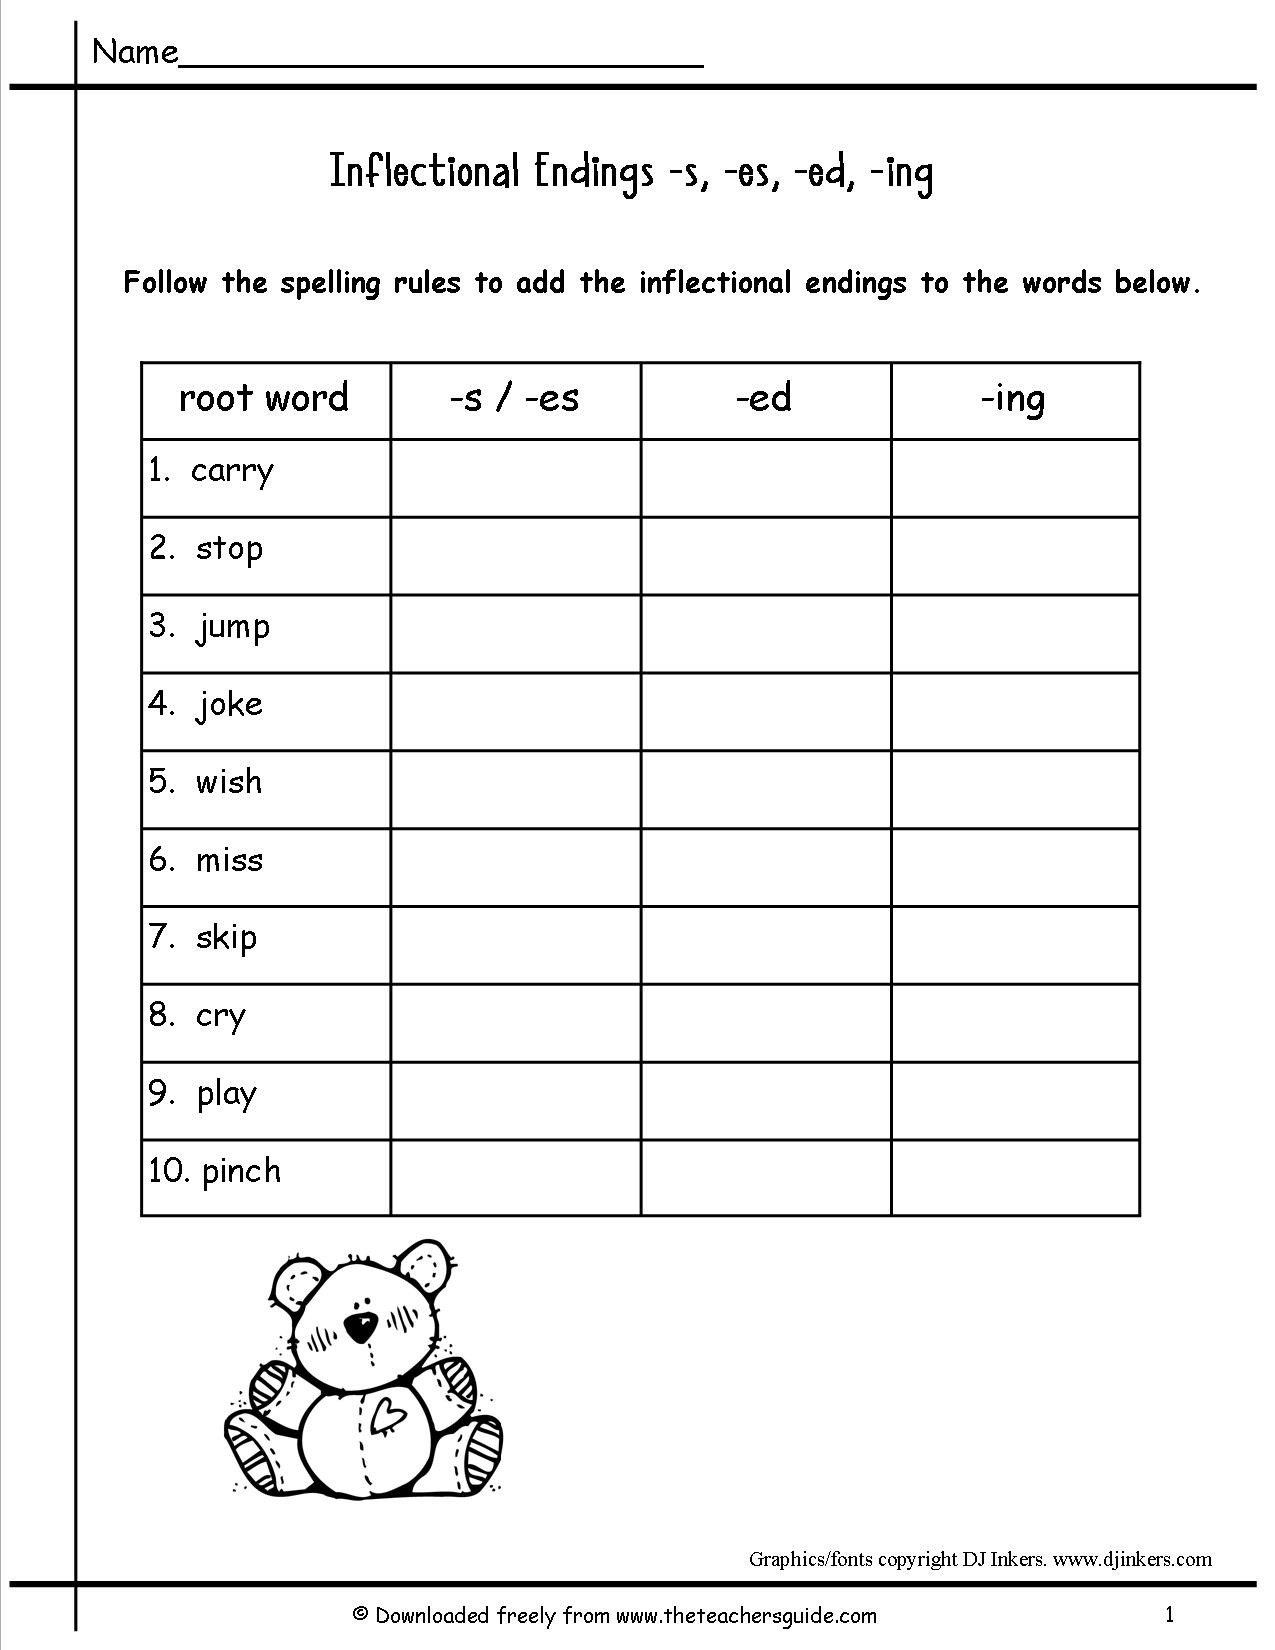 Inflectional Endings Worksheets 2nd Grade Wonders Second Grade Unit Four Week Two Printouts